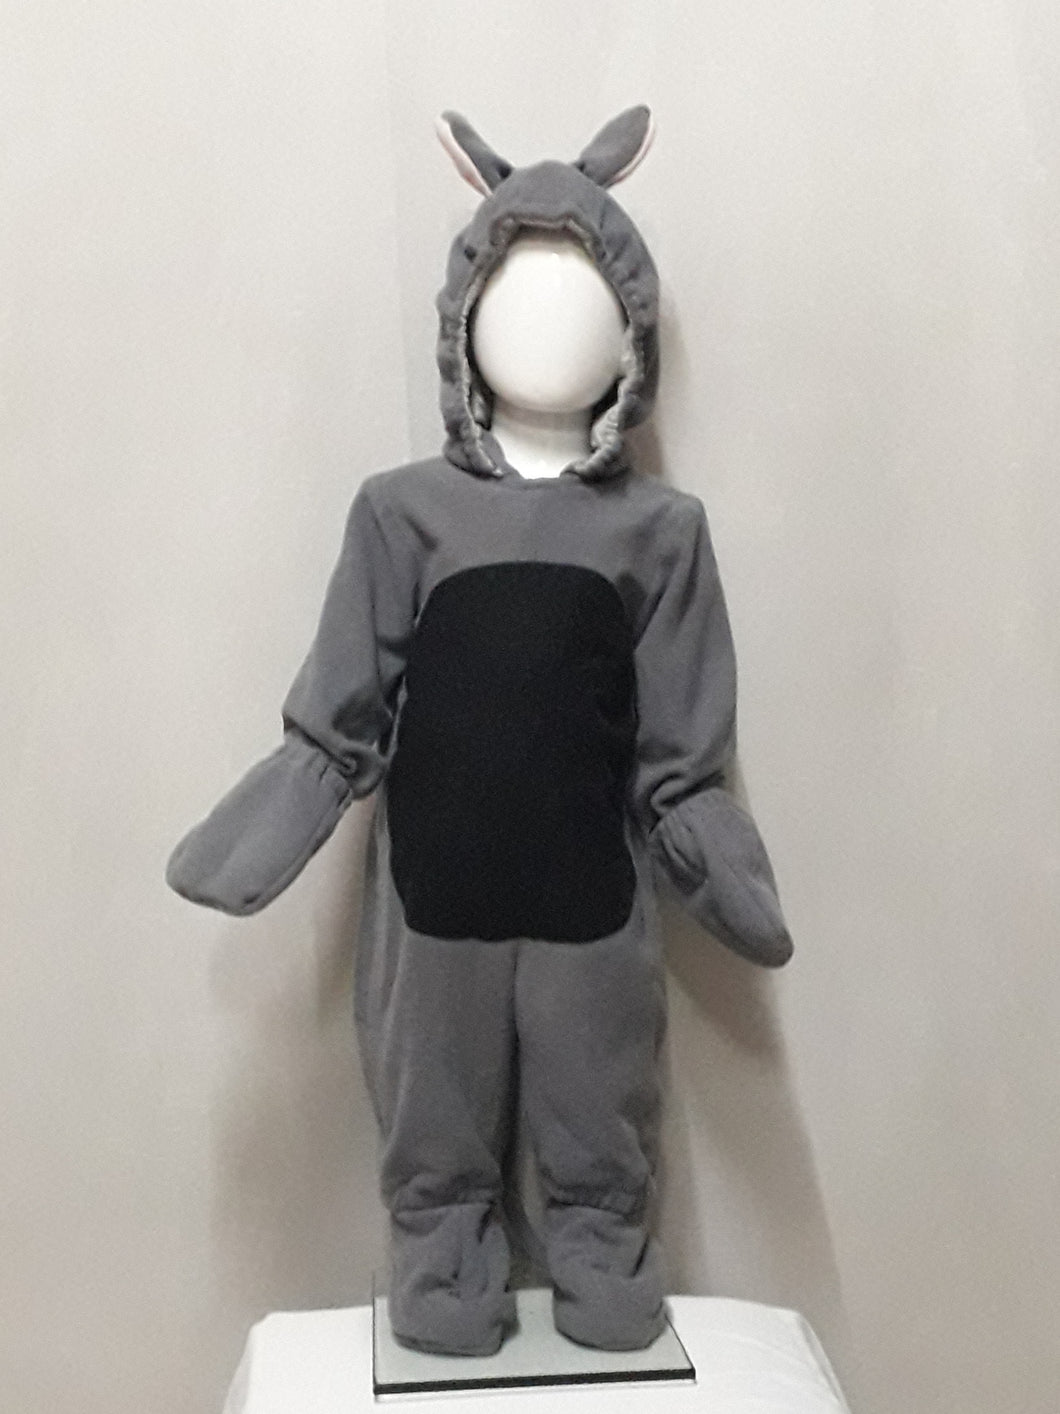 Mouse Costume / Animal Costume for Kids (1-2yo)